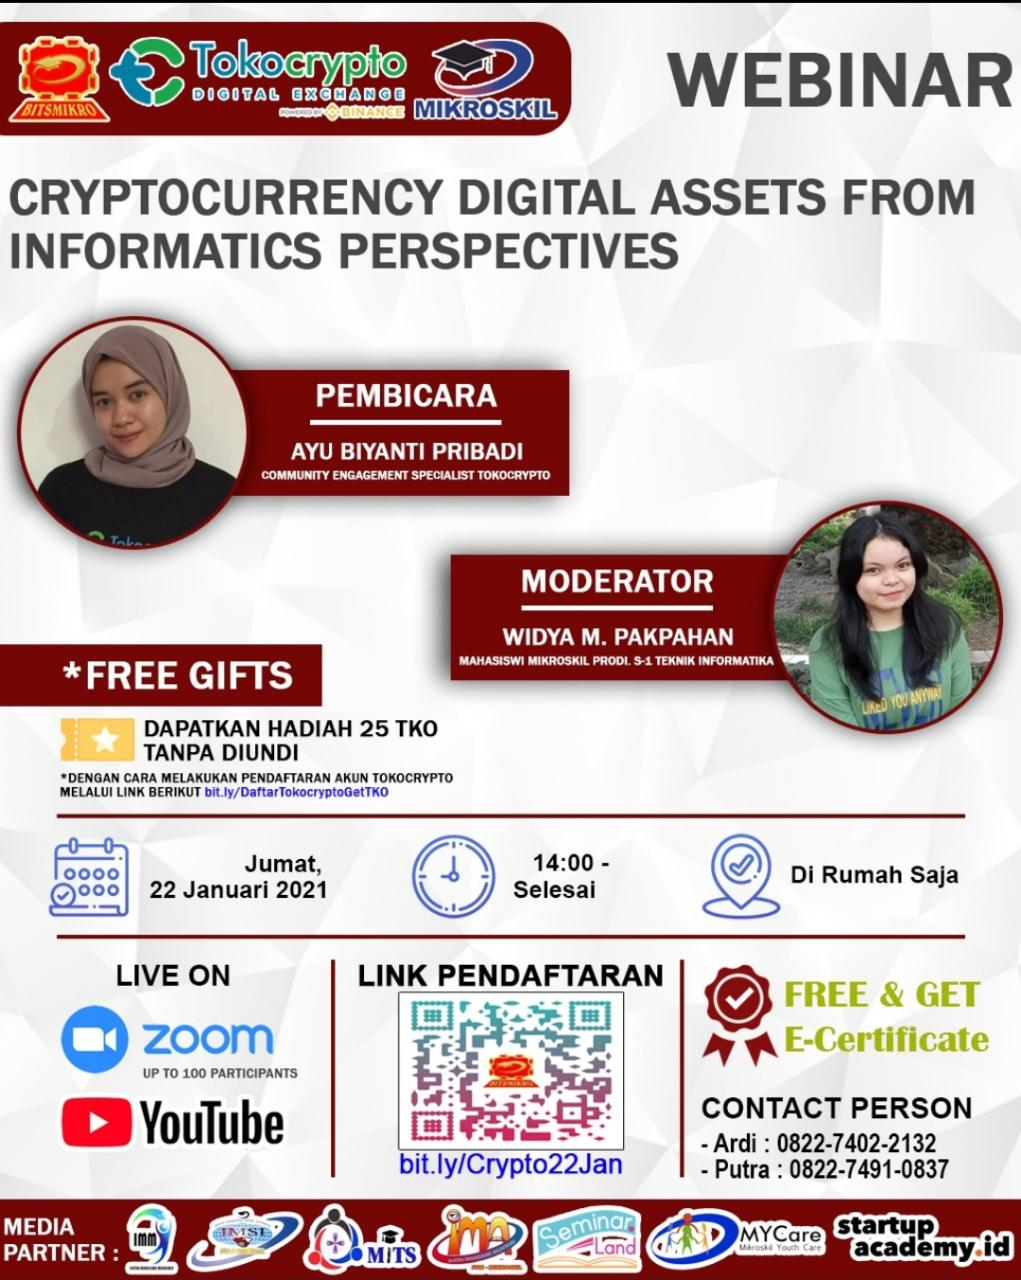 Poster: Cryptocurrency Digital Assets from Informatics Perspectives